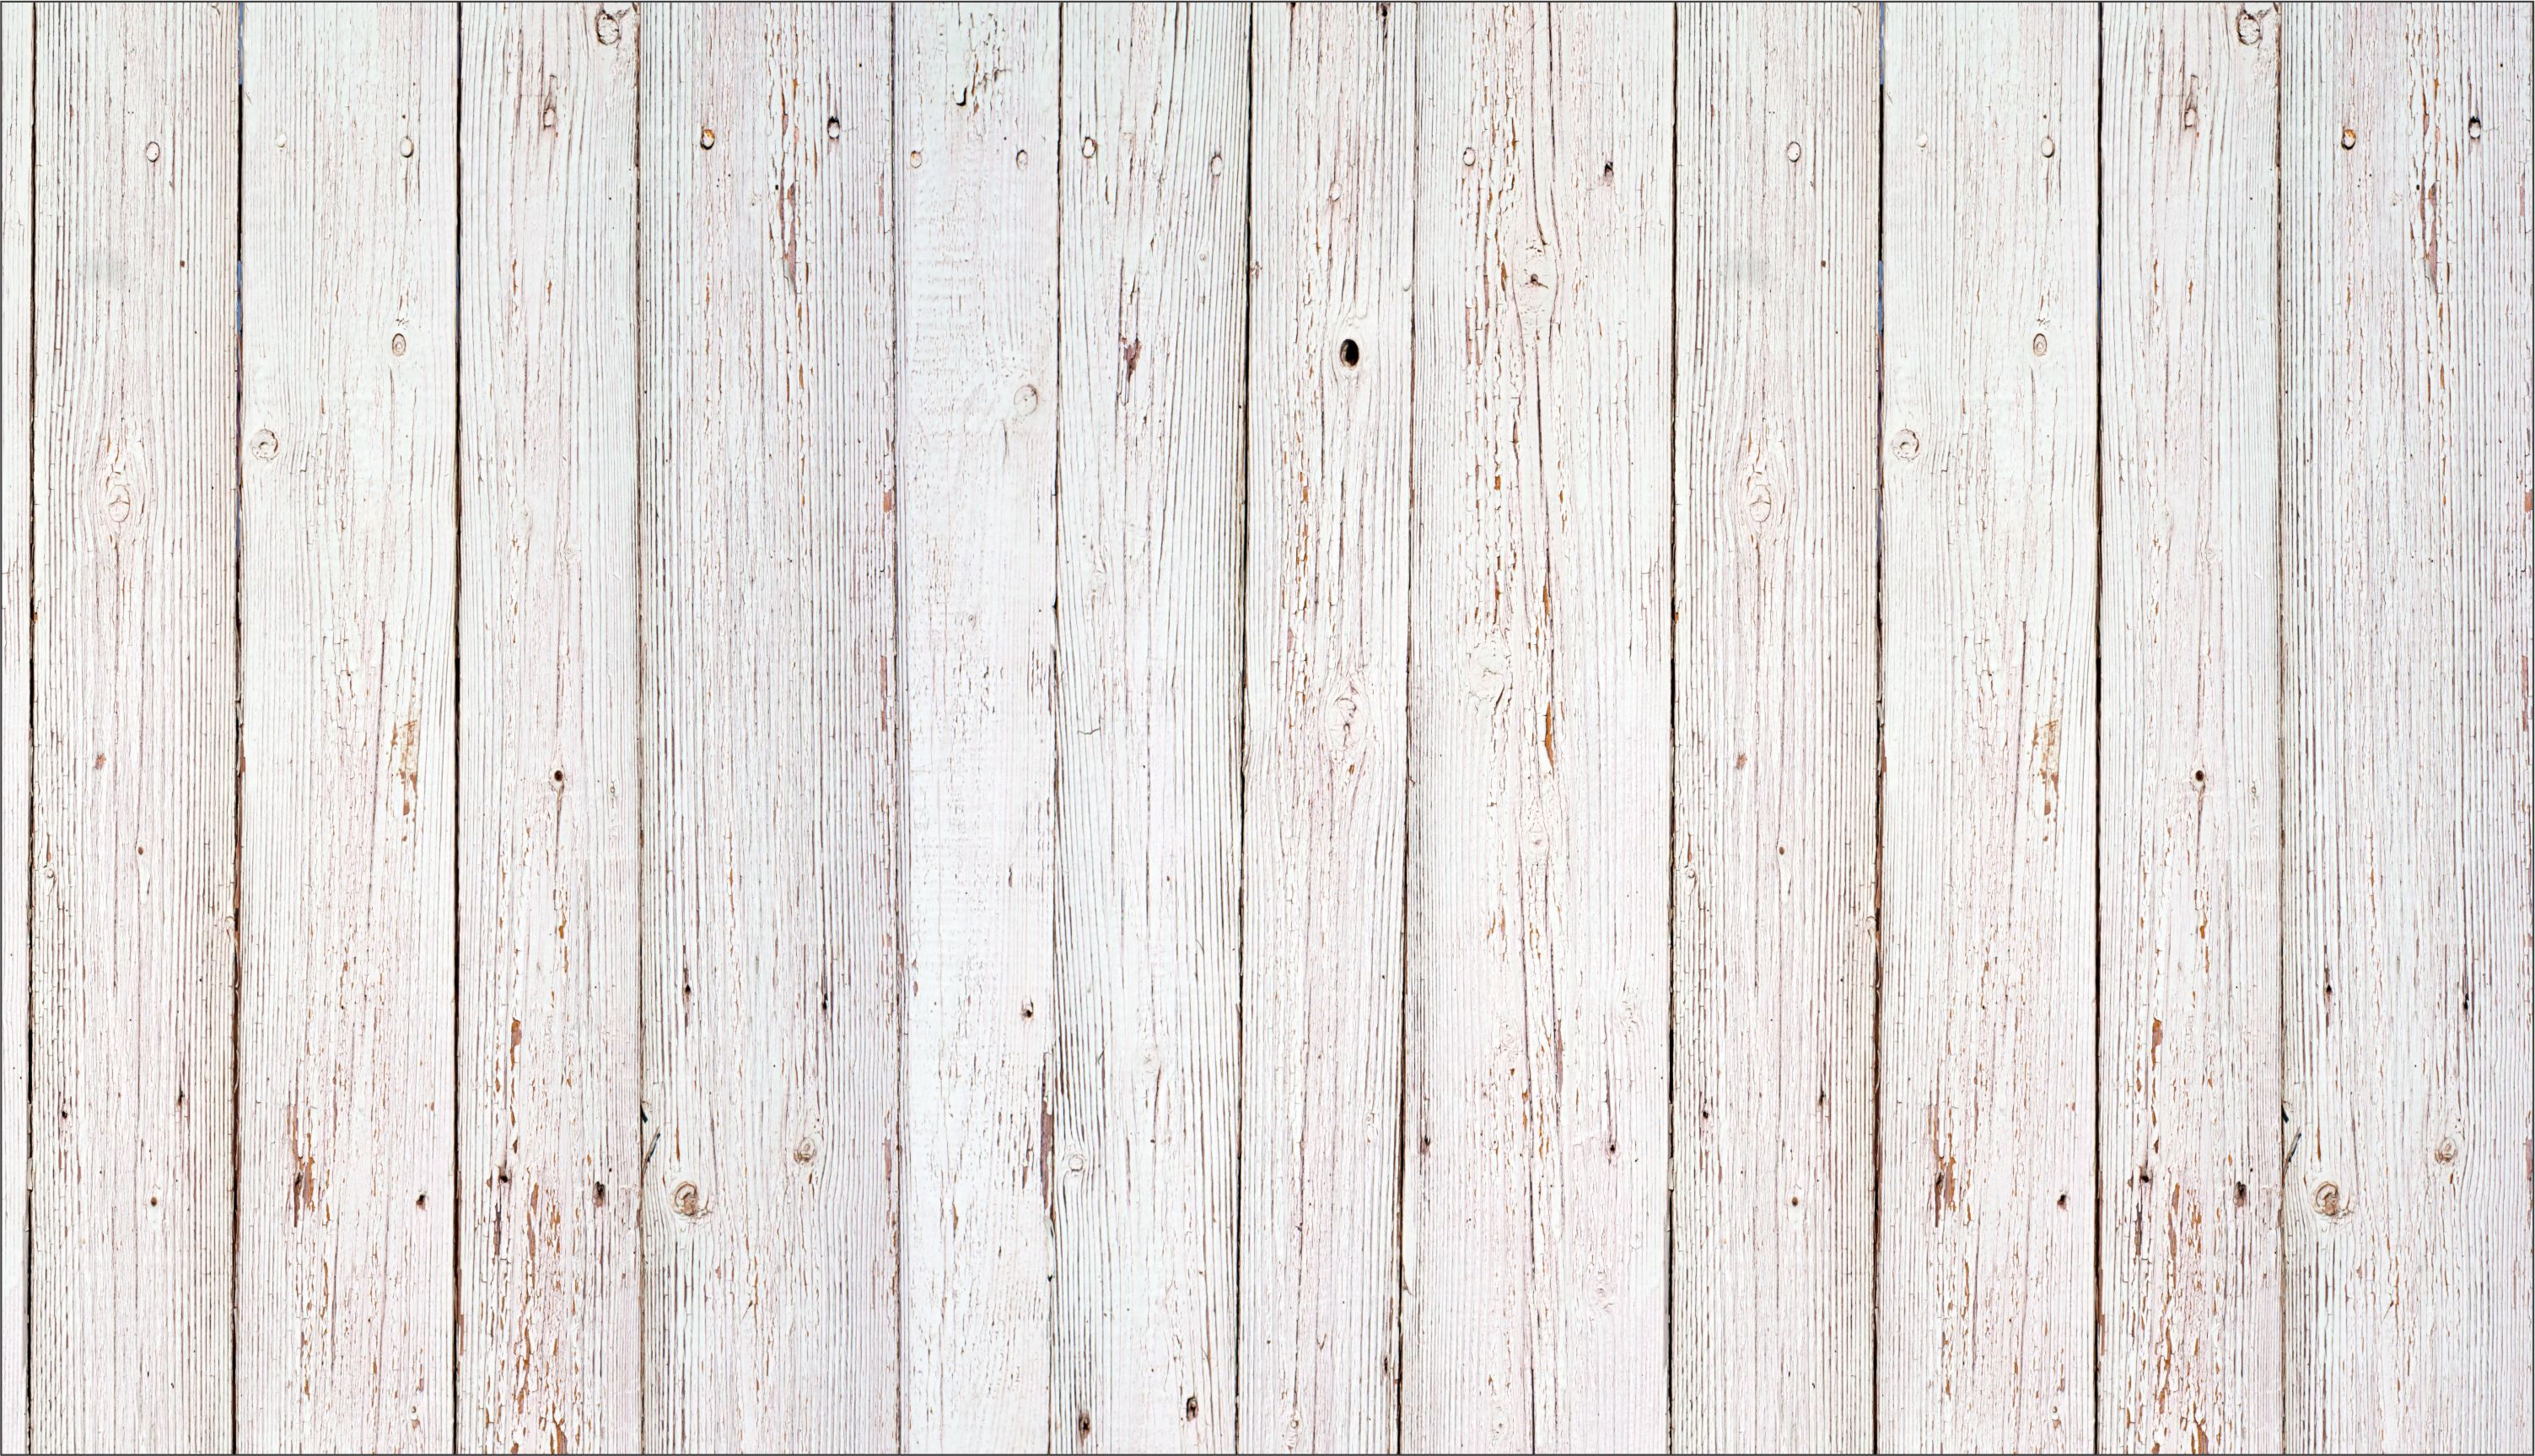 white wood floor texture. White Wood HD Wallpaper Desktop Background  rpt 3006x1727 px 1 07 MB AbstractRustic Repeatable Floor TextureWhite